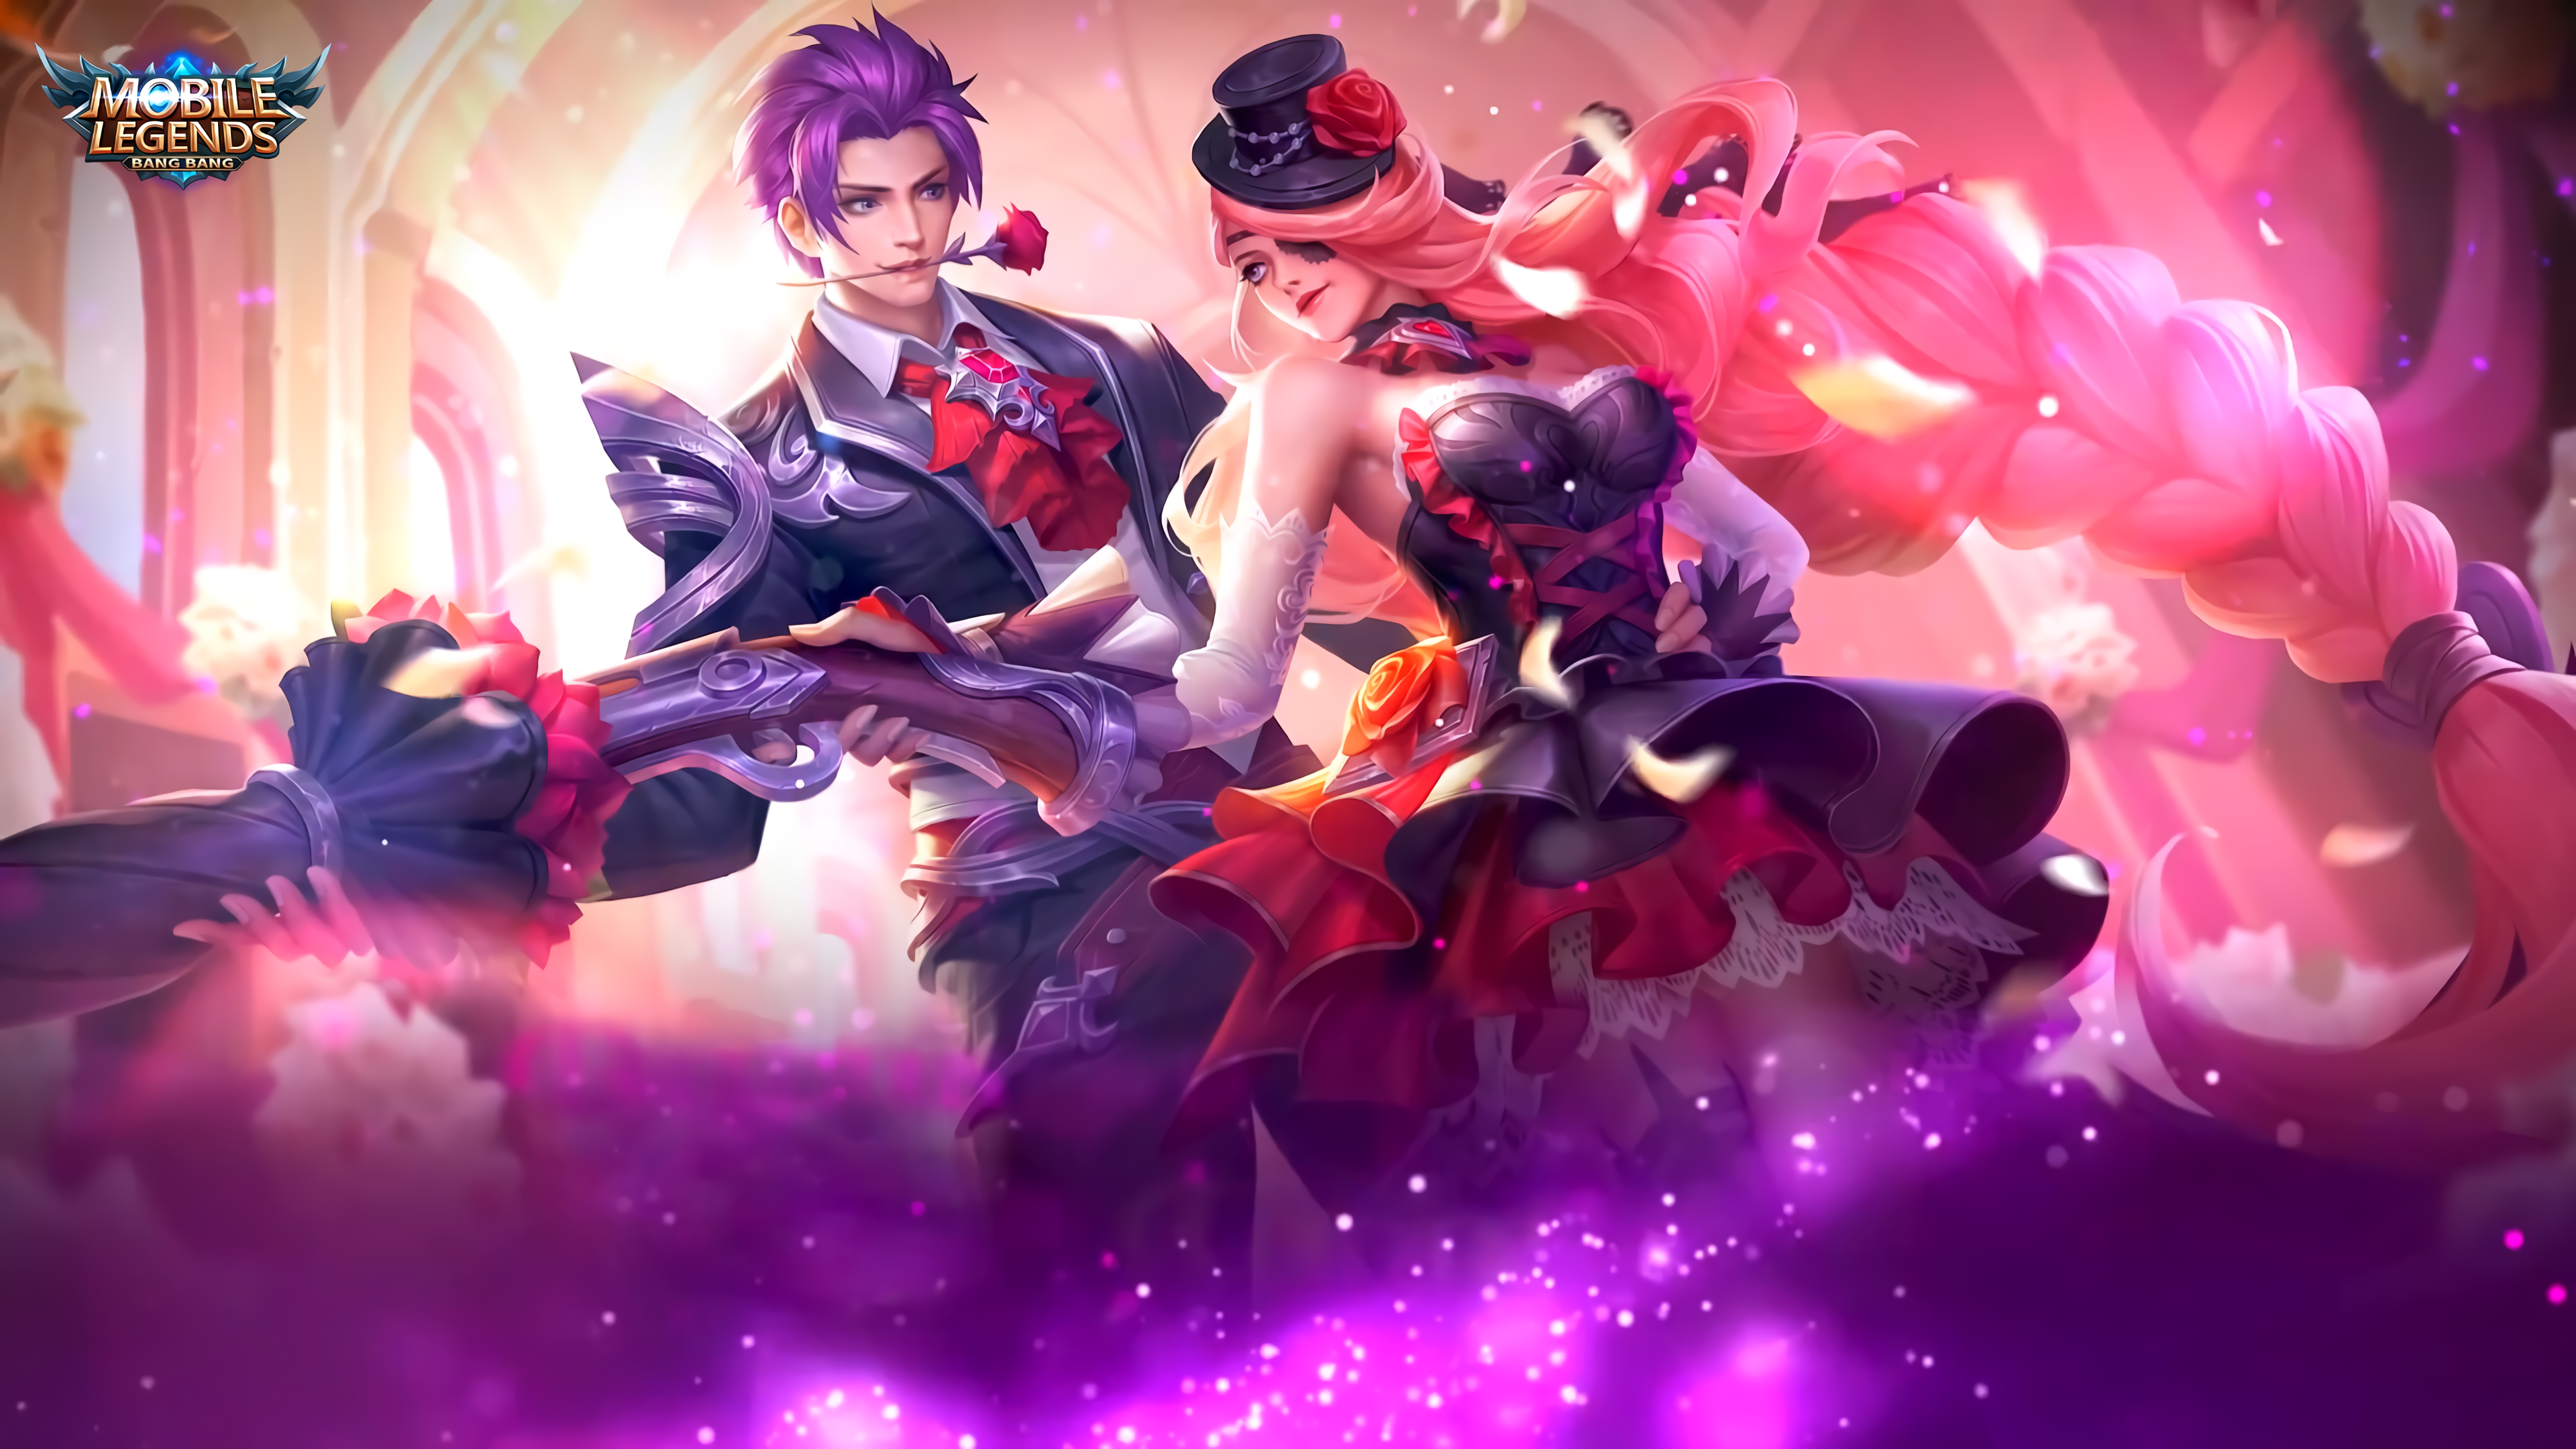 Pin by Min Thukha on Mobile Legends | Mobile legend ...